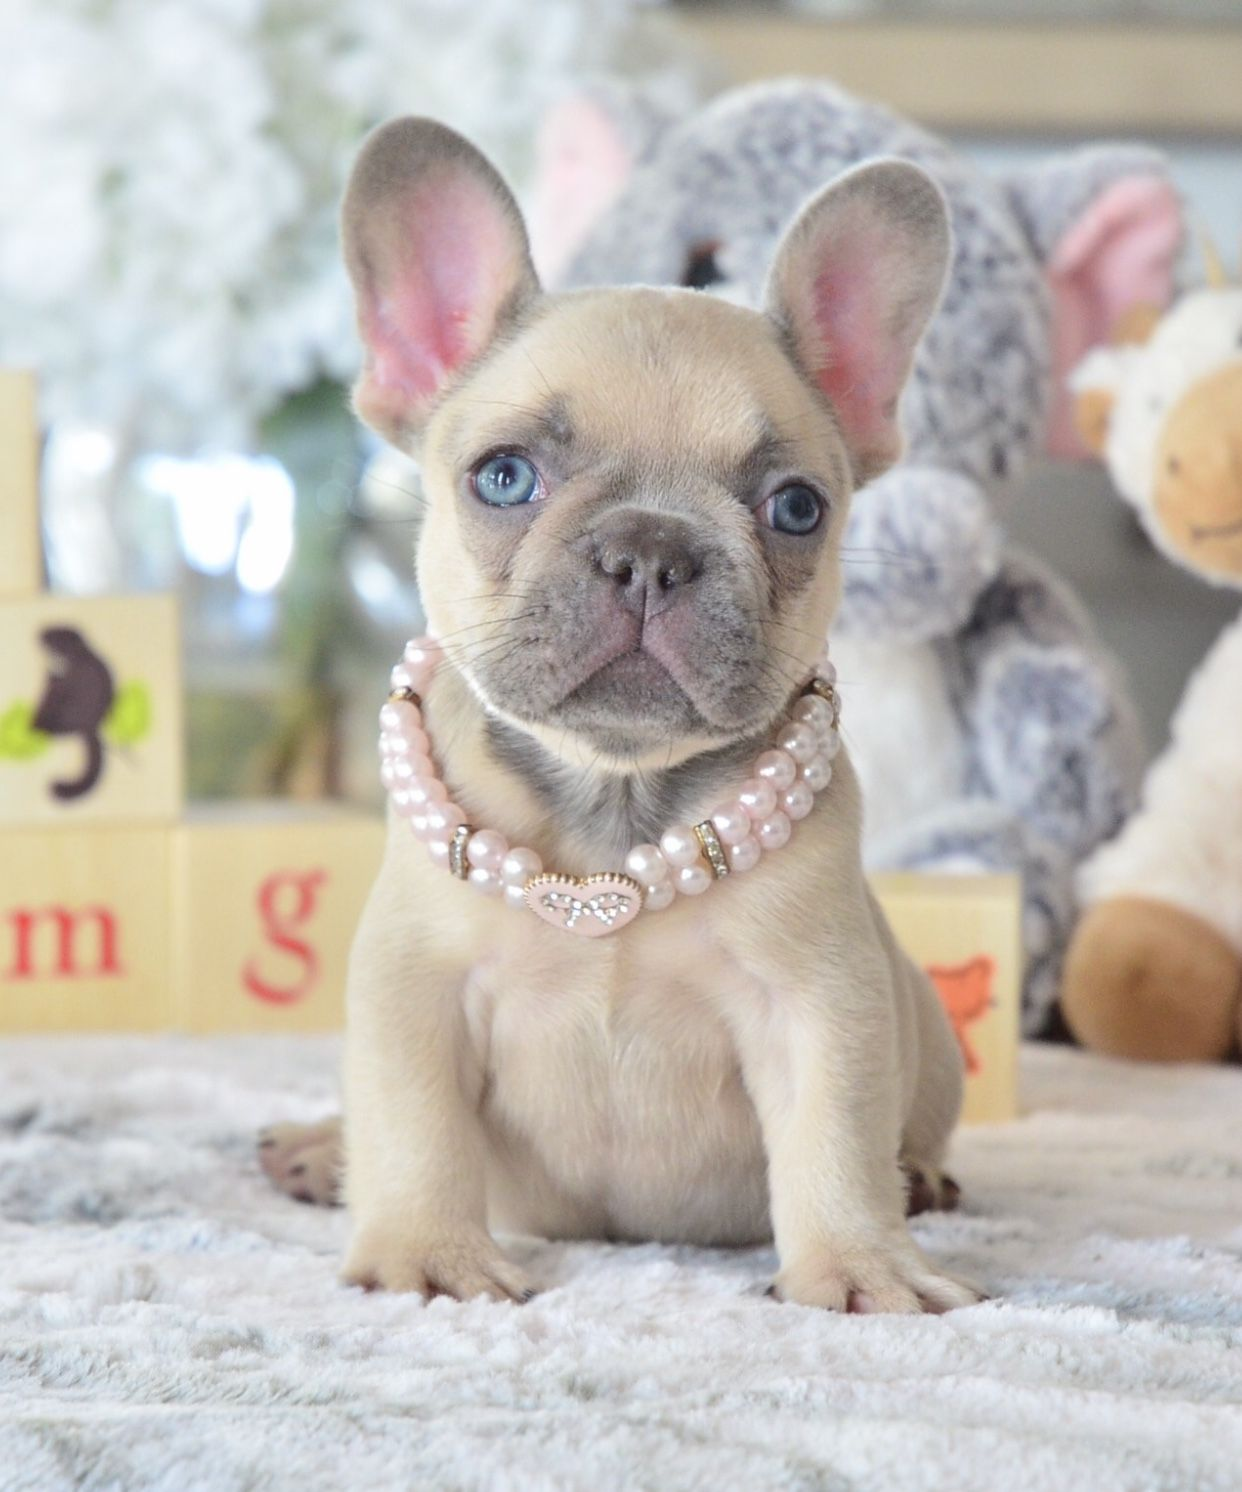 Pretty In Pink Www Poeticfrenchbulldogs Com French Bulldog Puppies For Sale Health C French Bulldog Puppies Bulldog Puppies Cute Dogs And Puppies